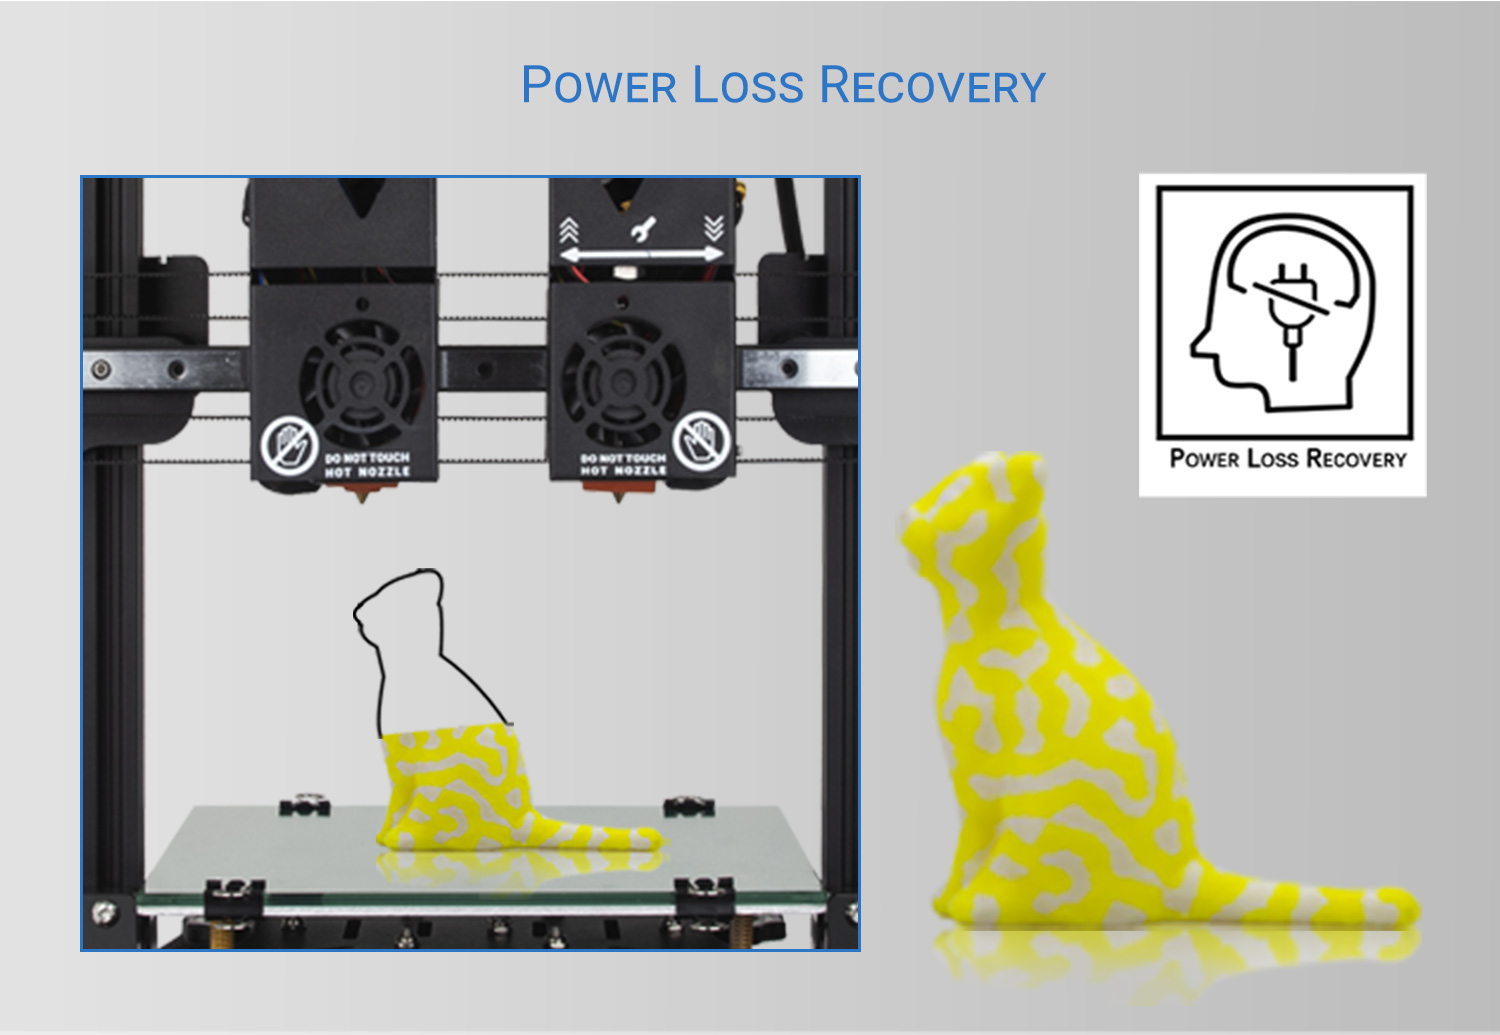 TL-D5 Power Loss Recovery